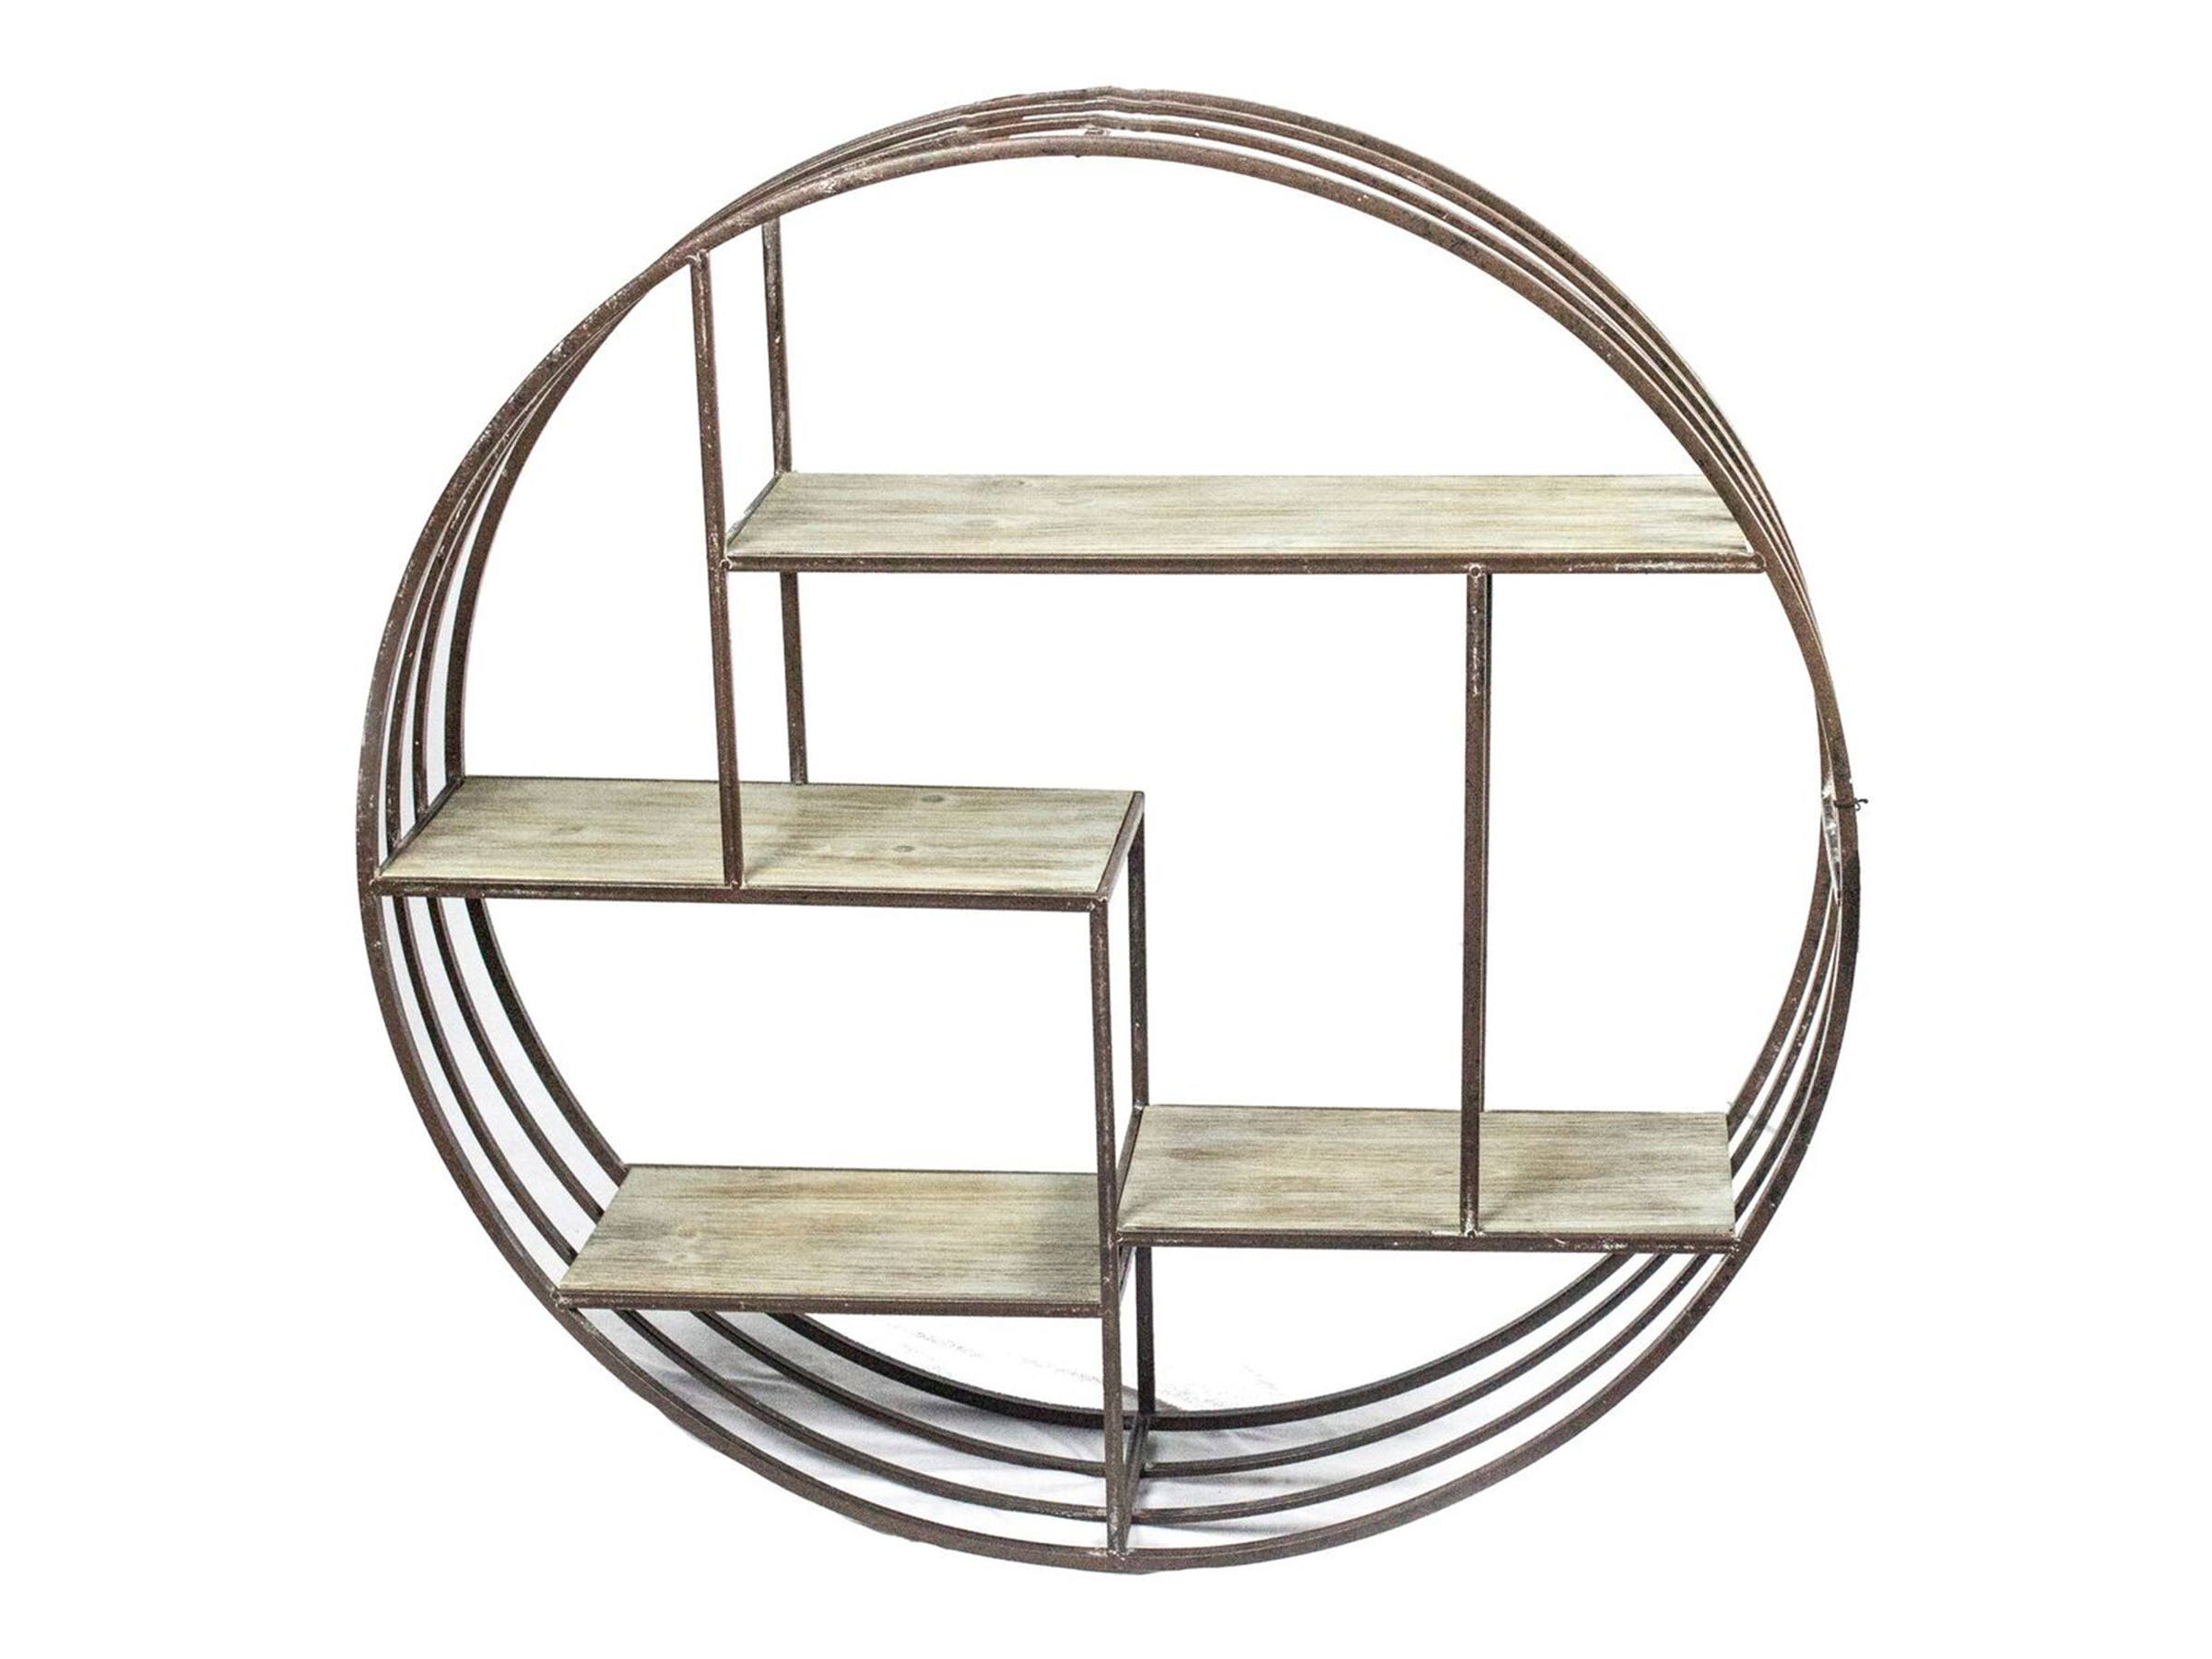 "Round Bronze Metal and Wood Wall Shelf 32""H"